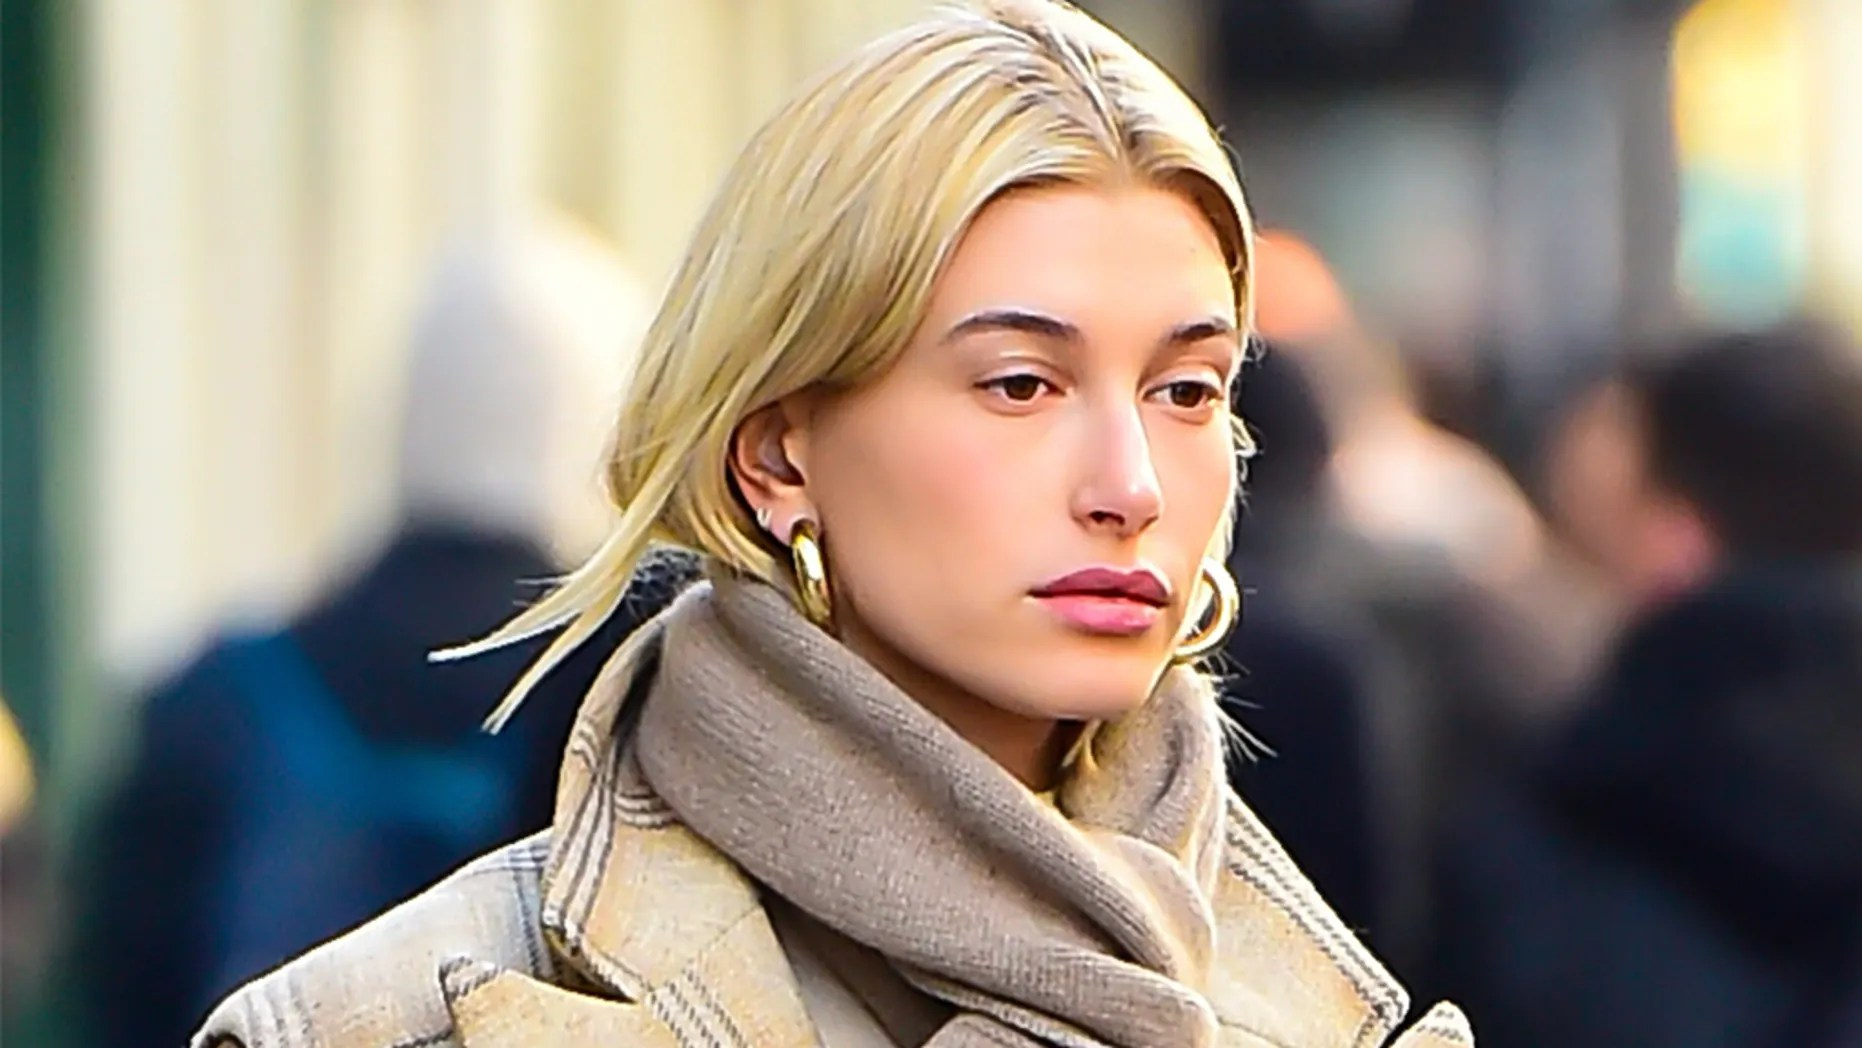 Hailey Baldwin Opens Up About Mental Health Says She